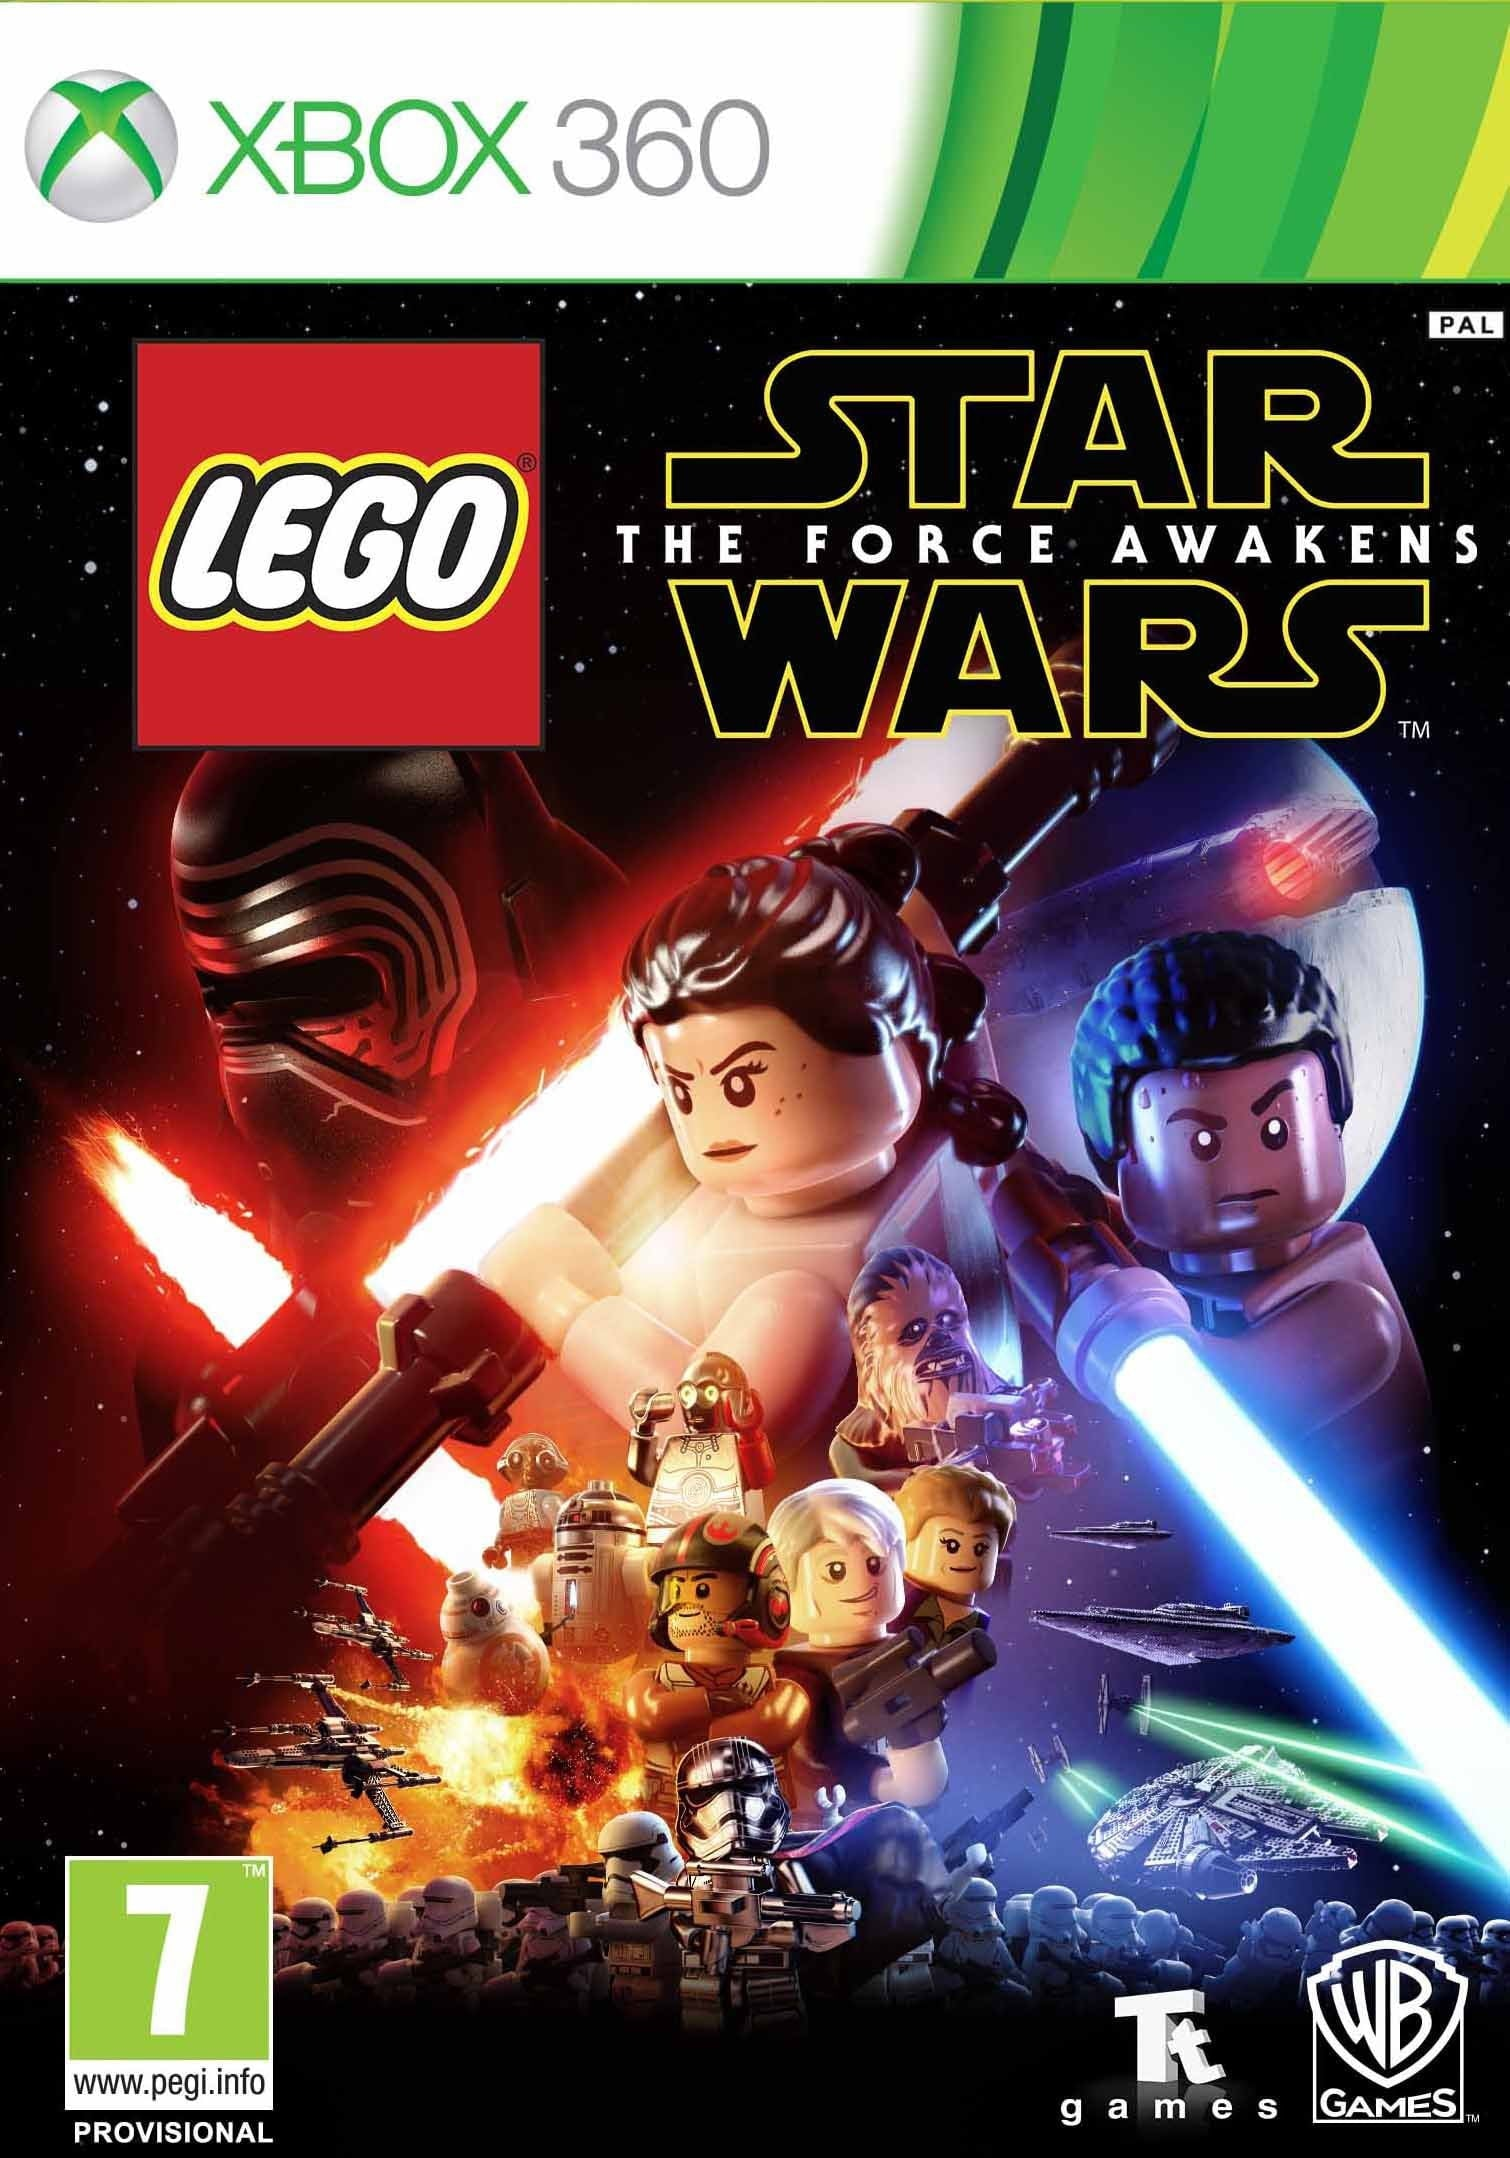 Buy Lego Star Wars The Force Awakens (XBOX 360) XBOX 360 Game in Egypt - Shamy Stores